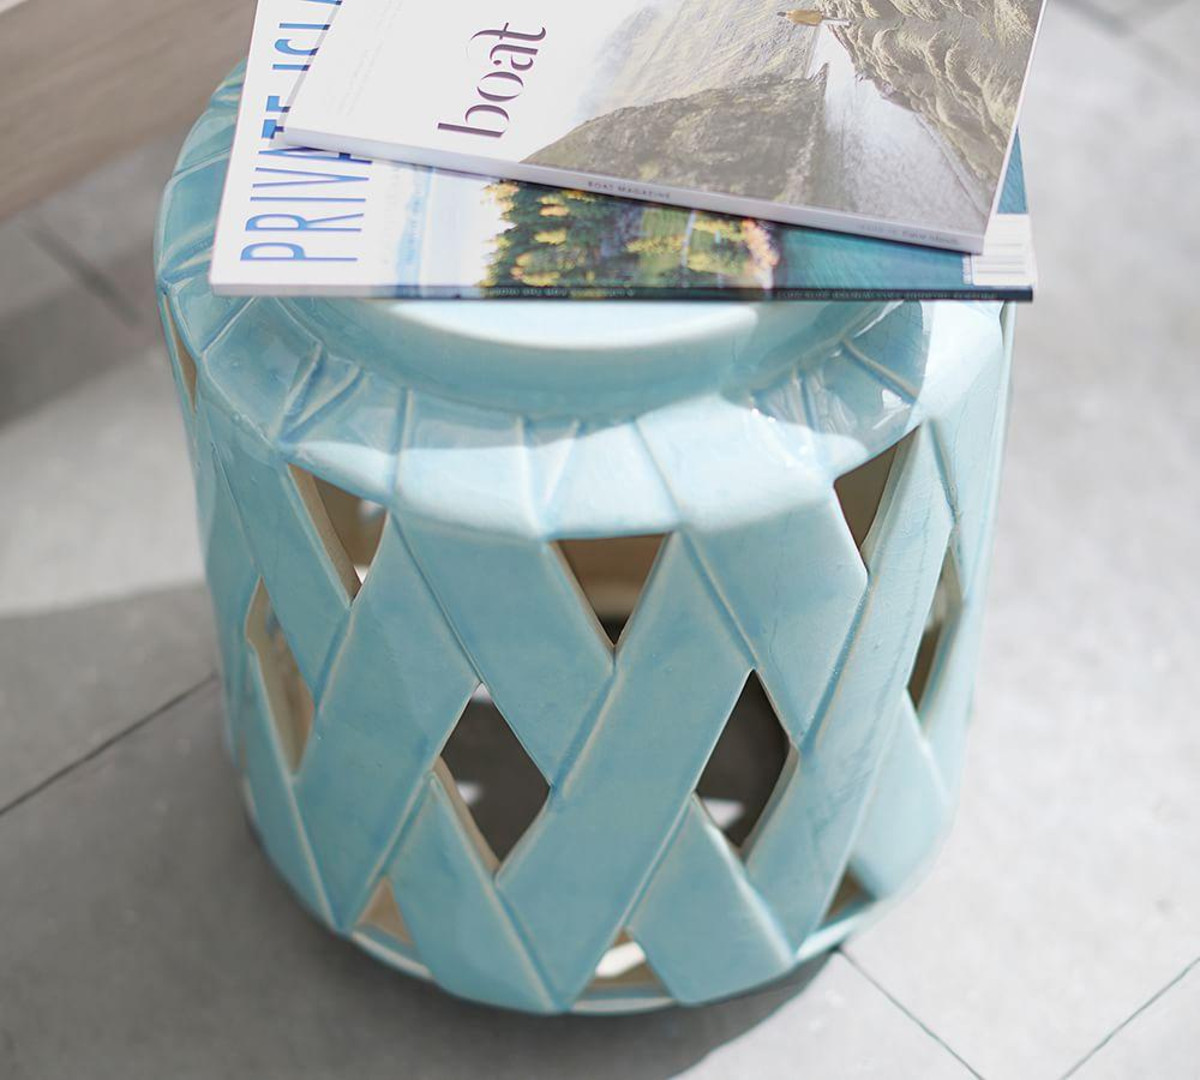 lattice ceramic accent table pottery barn media blue tessa furniture butcher block countertop martha stewart outdoor maple trestle curved console plastic side pier one wicker